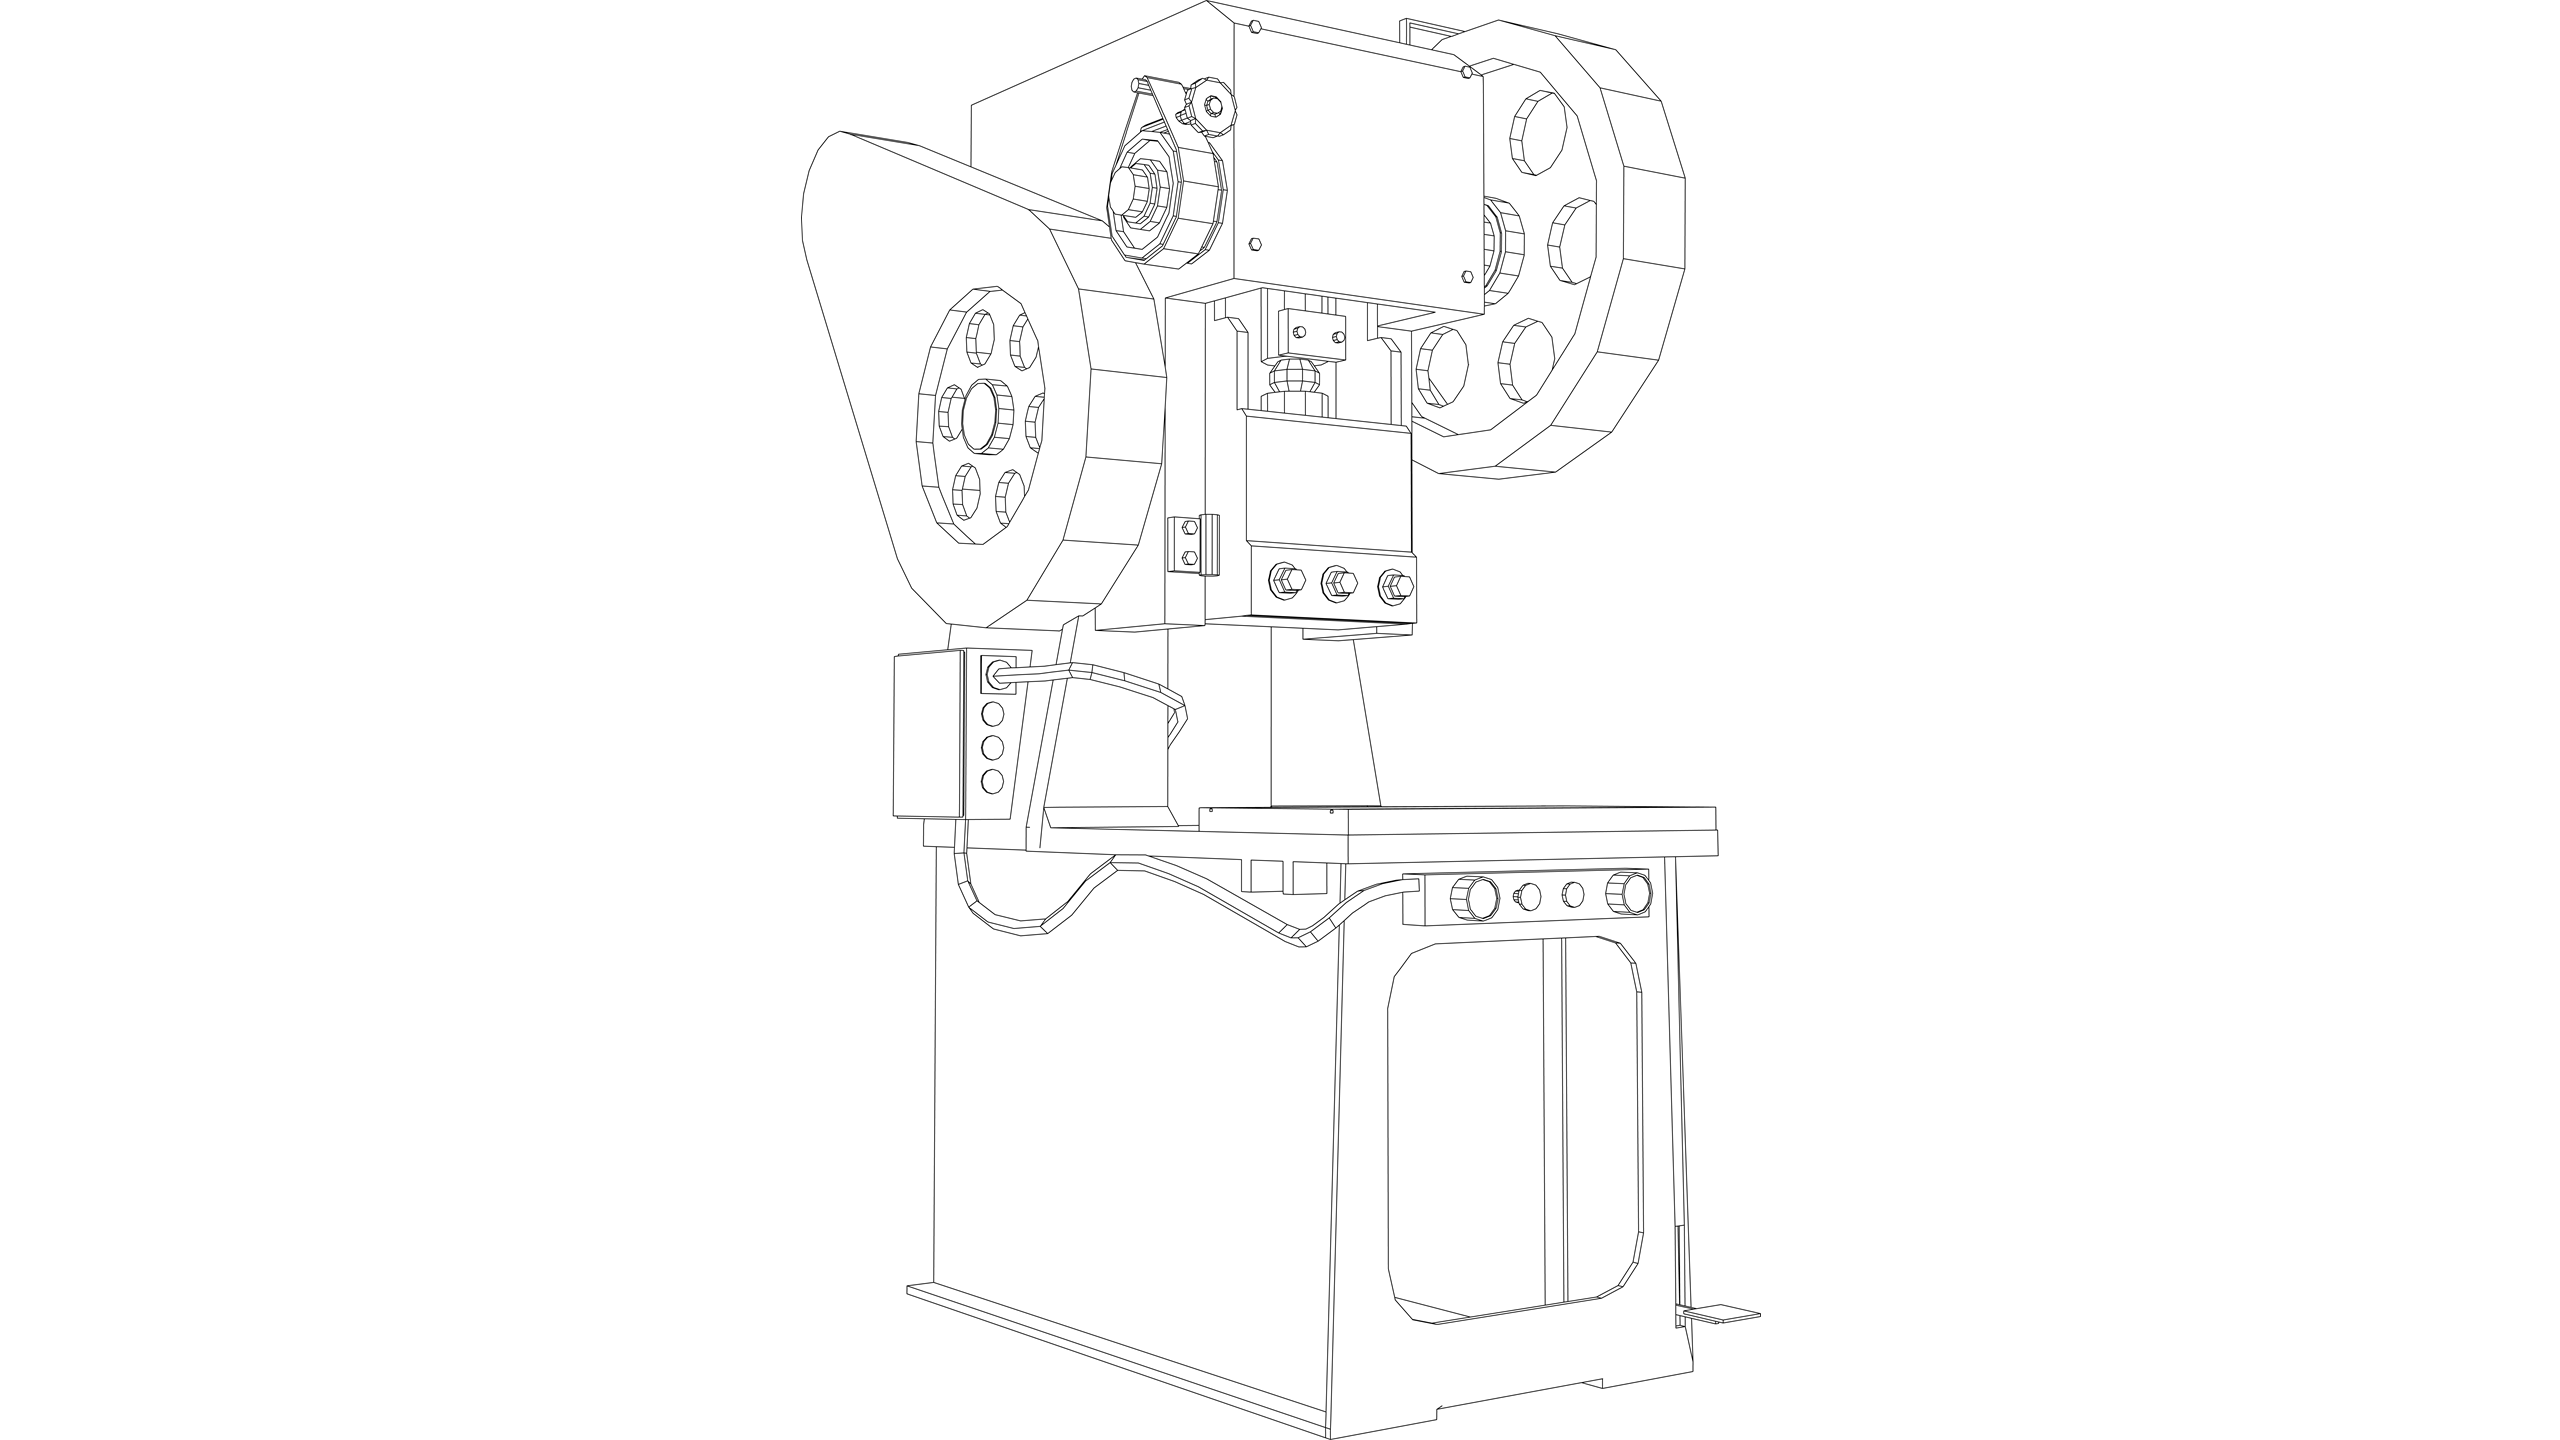 Vector Image: Power Press (Electric with enclosed tool)